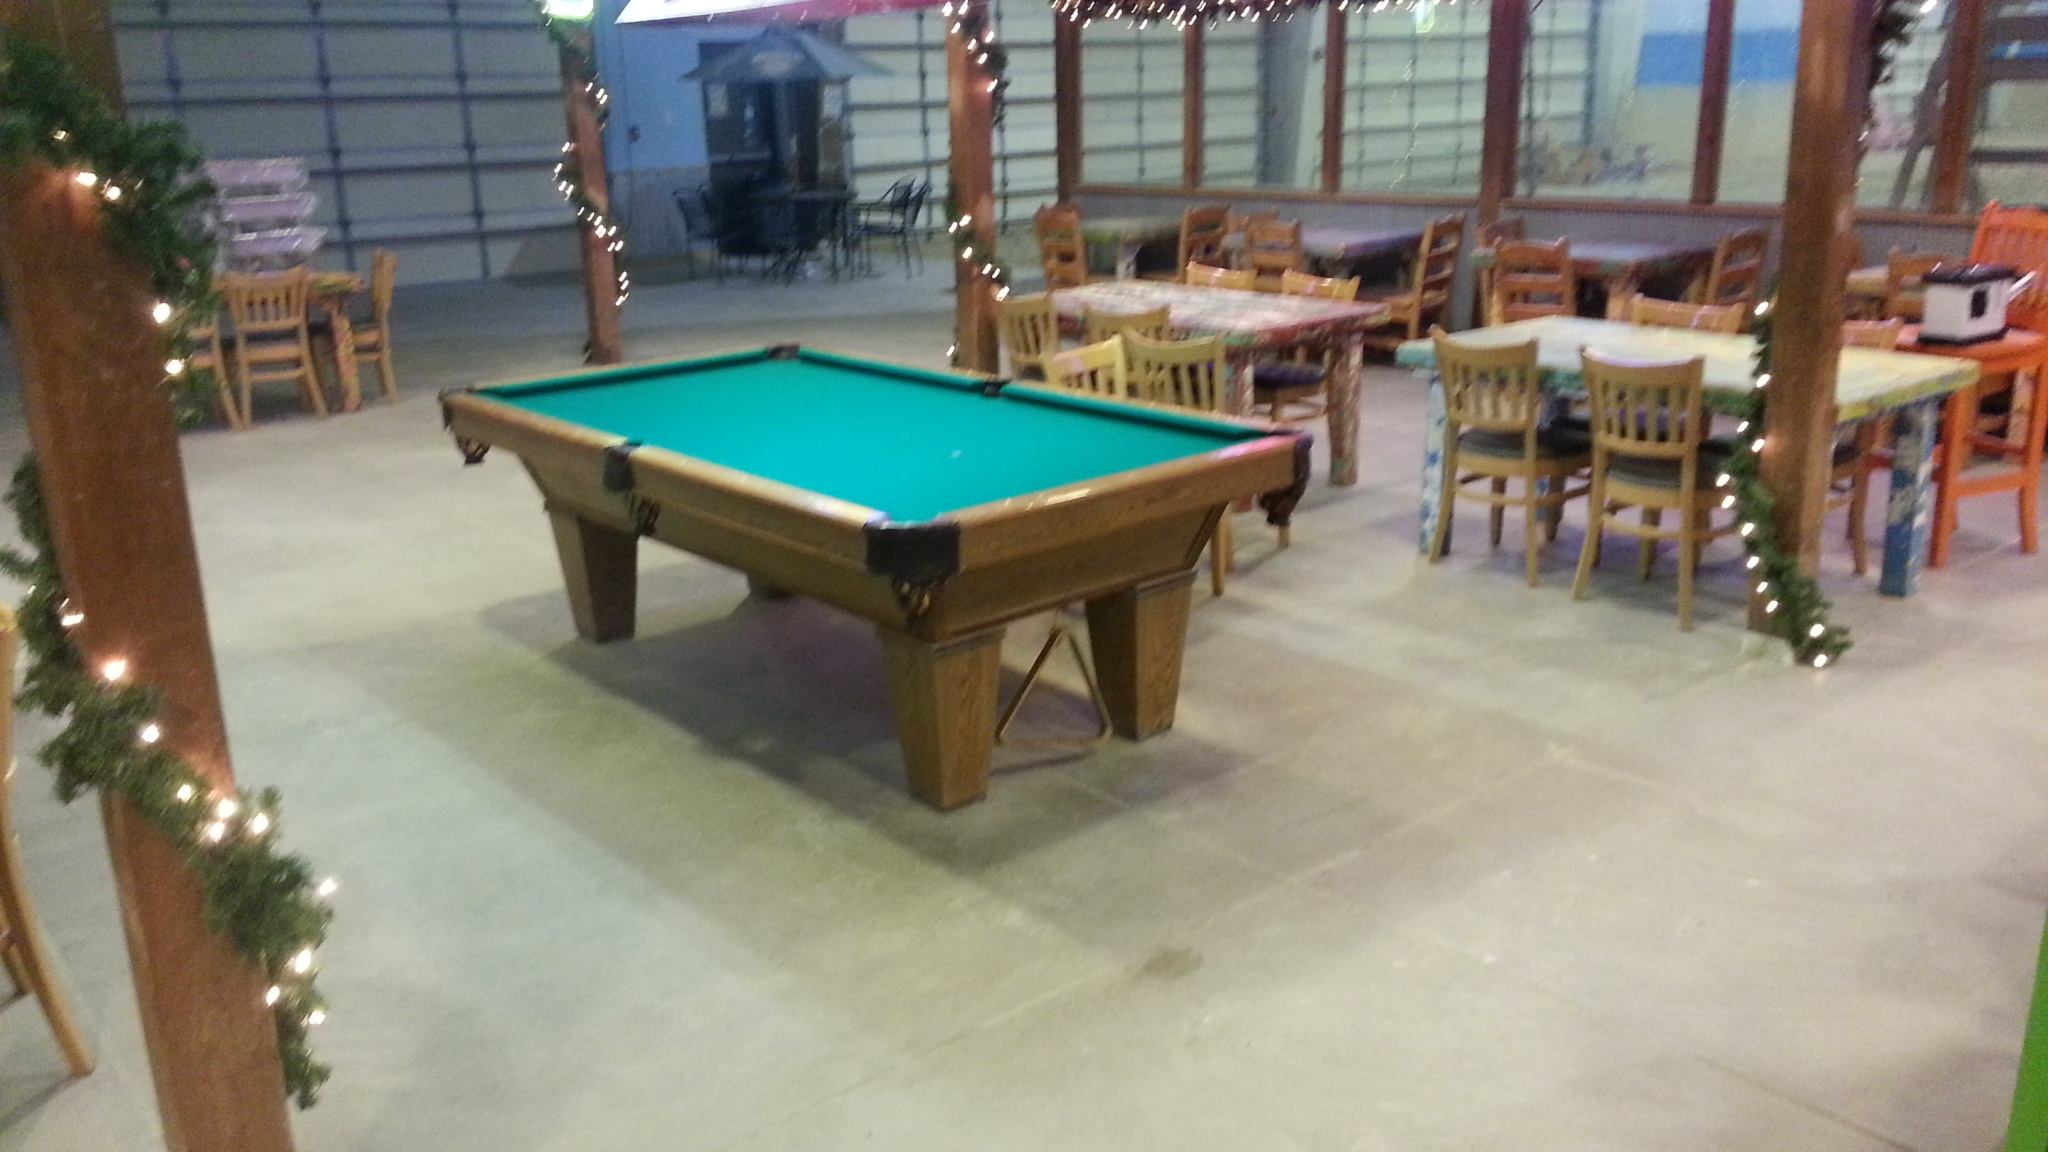 Blog Pool Table Repairs In Denver CO The Pool Table Experts - Pool table felt repair near me